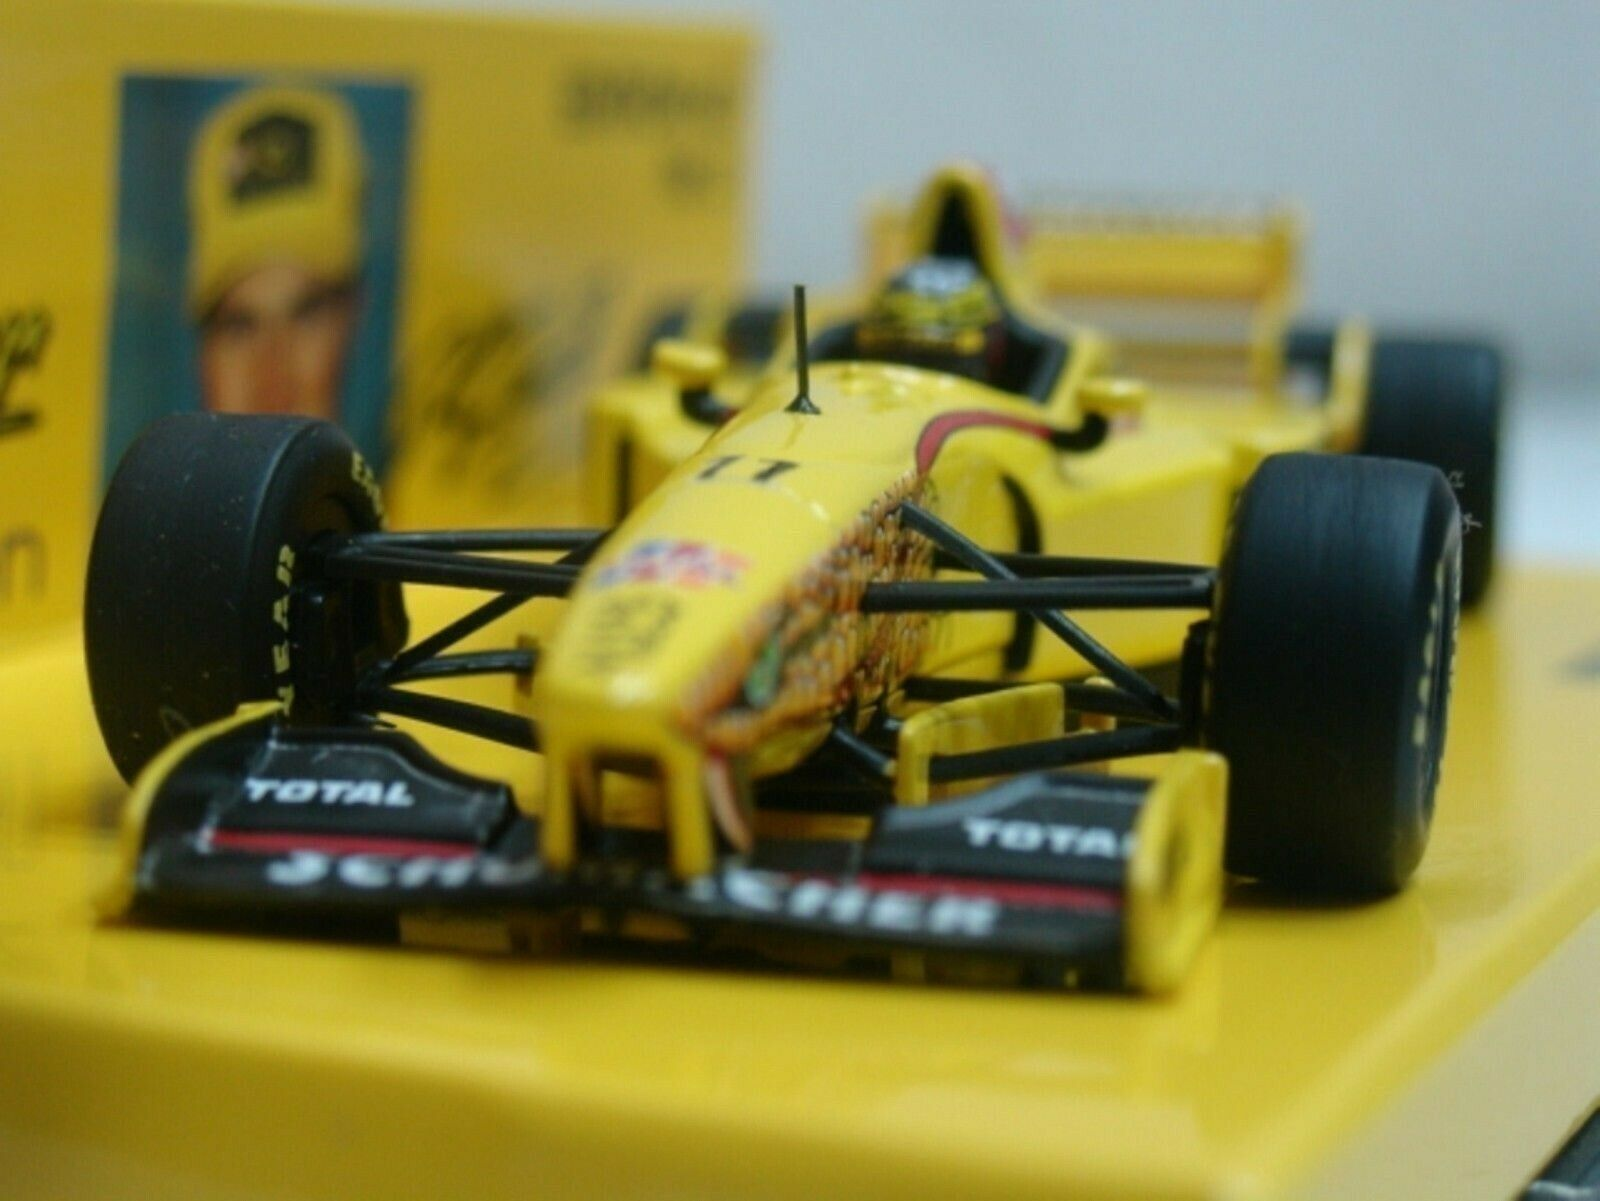 Wow extrêmement rare JORDAN 197 PEUGEOT R SCHUMACHER LAUNCH 1997 1 43 Minichamps